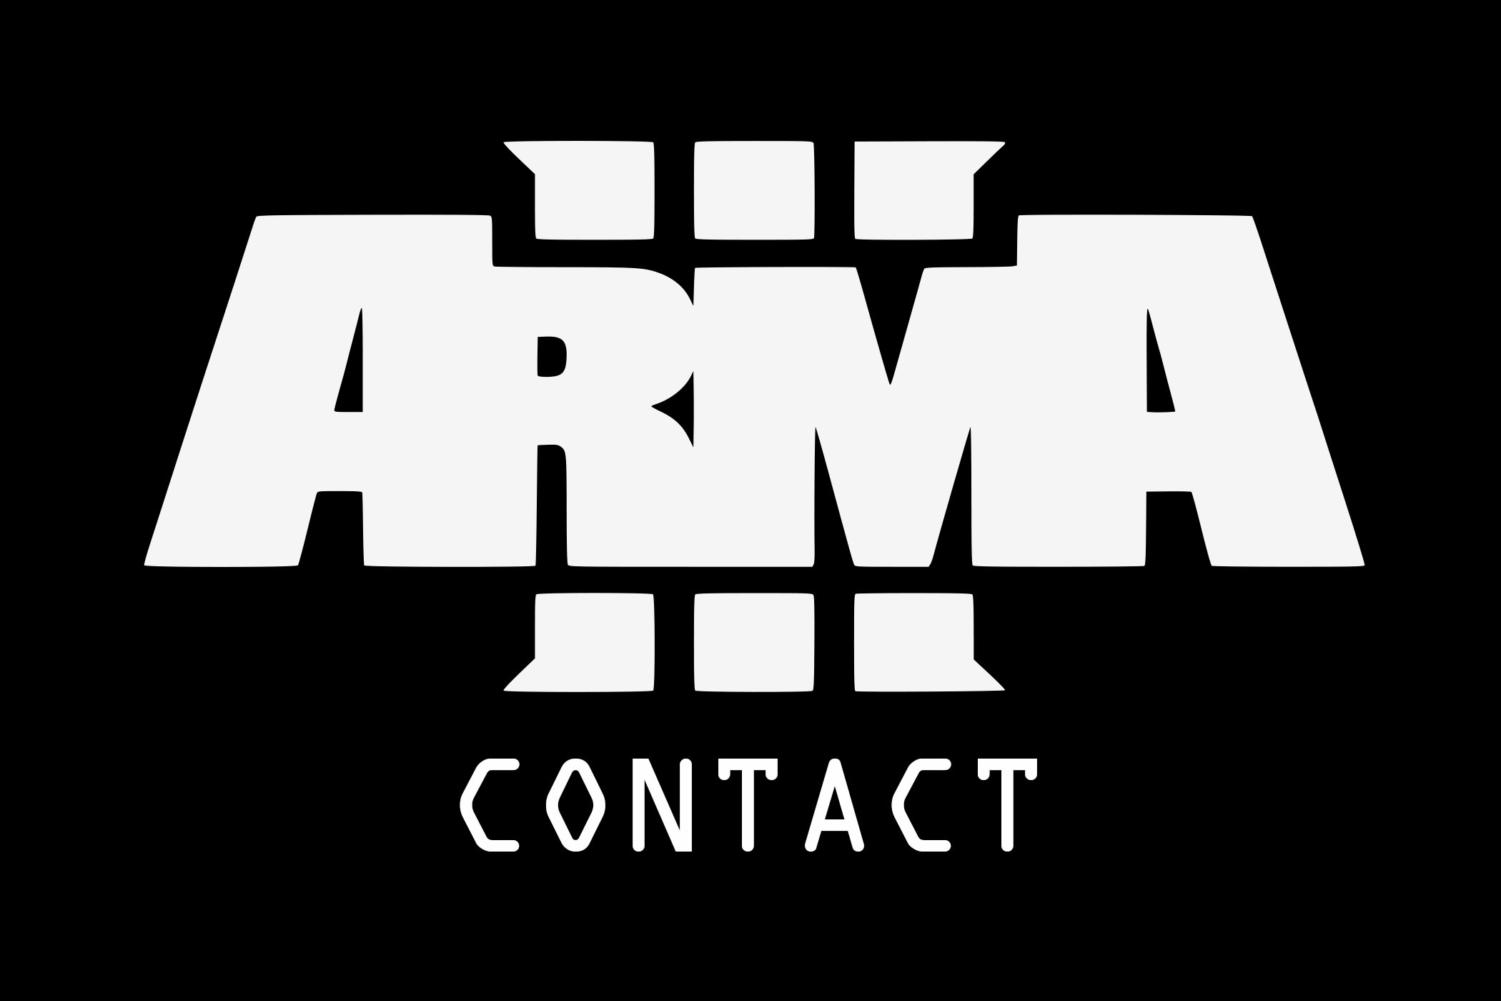 Arma is a series of first-person shooter video games made for Microsoft Windows. (Arma 3 by Bohemia Interactive does not meet the threshold of originality and is therefore public domain.)